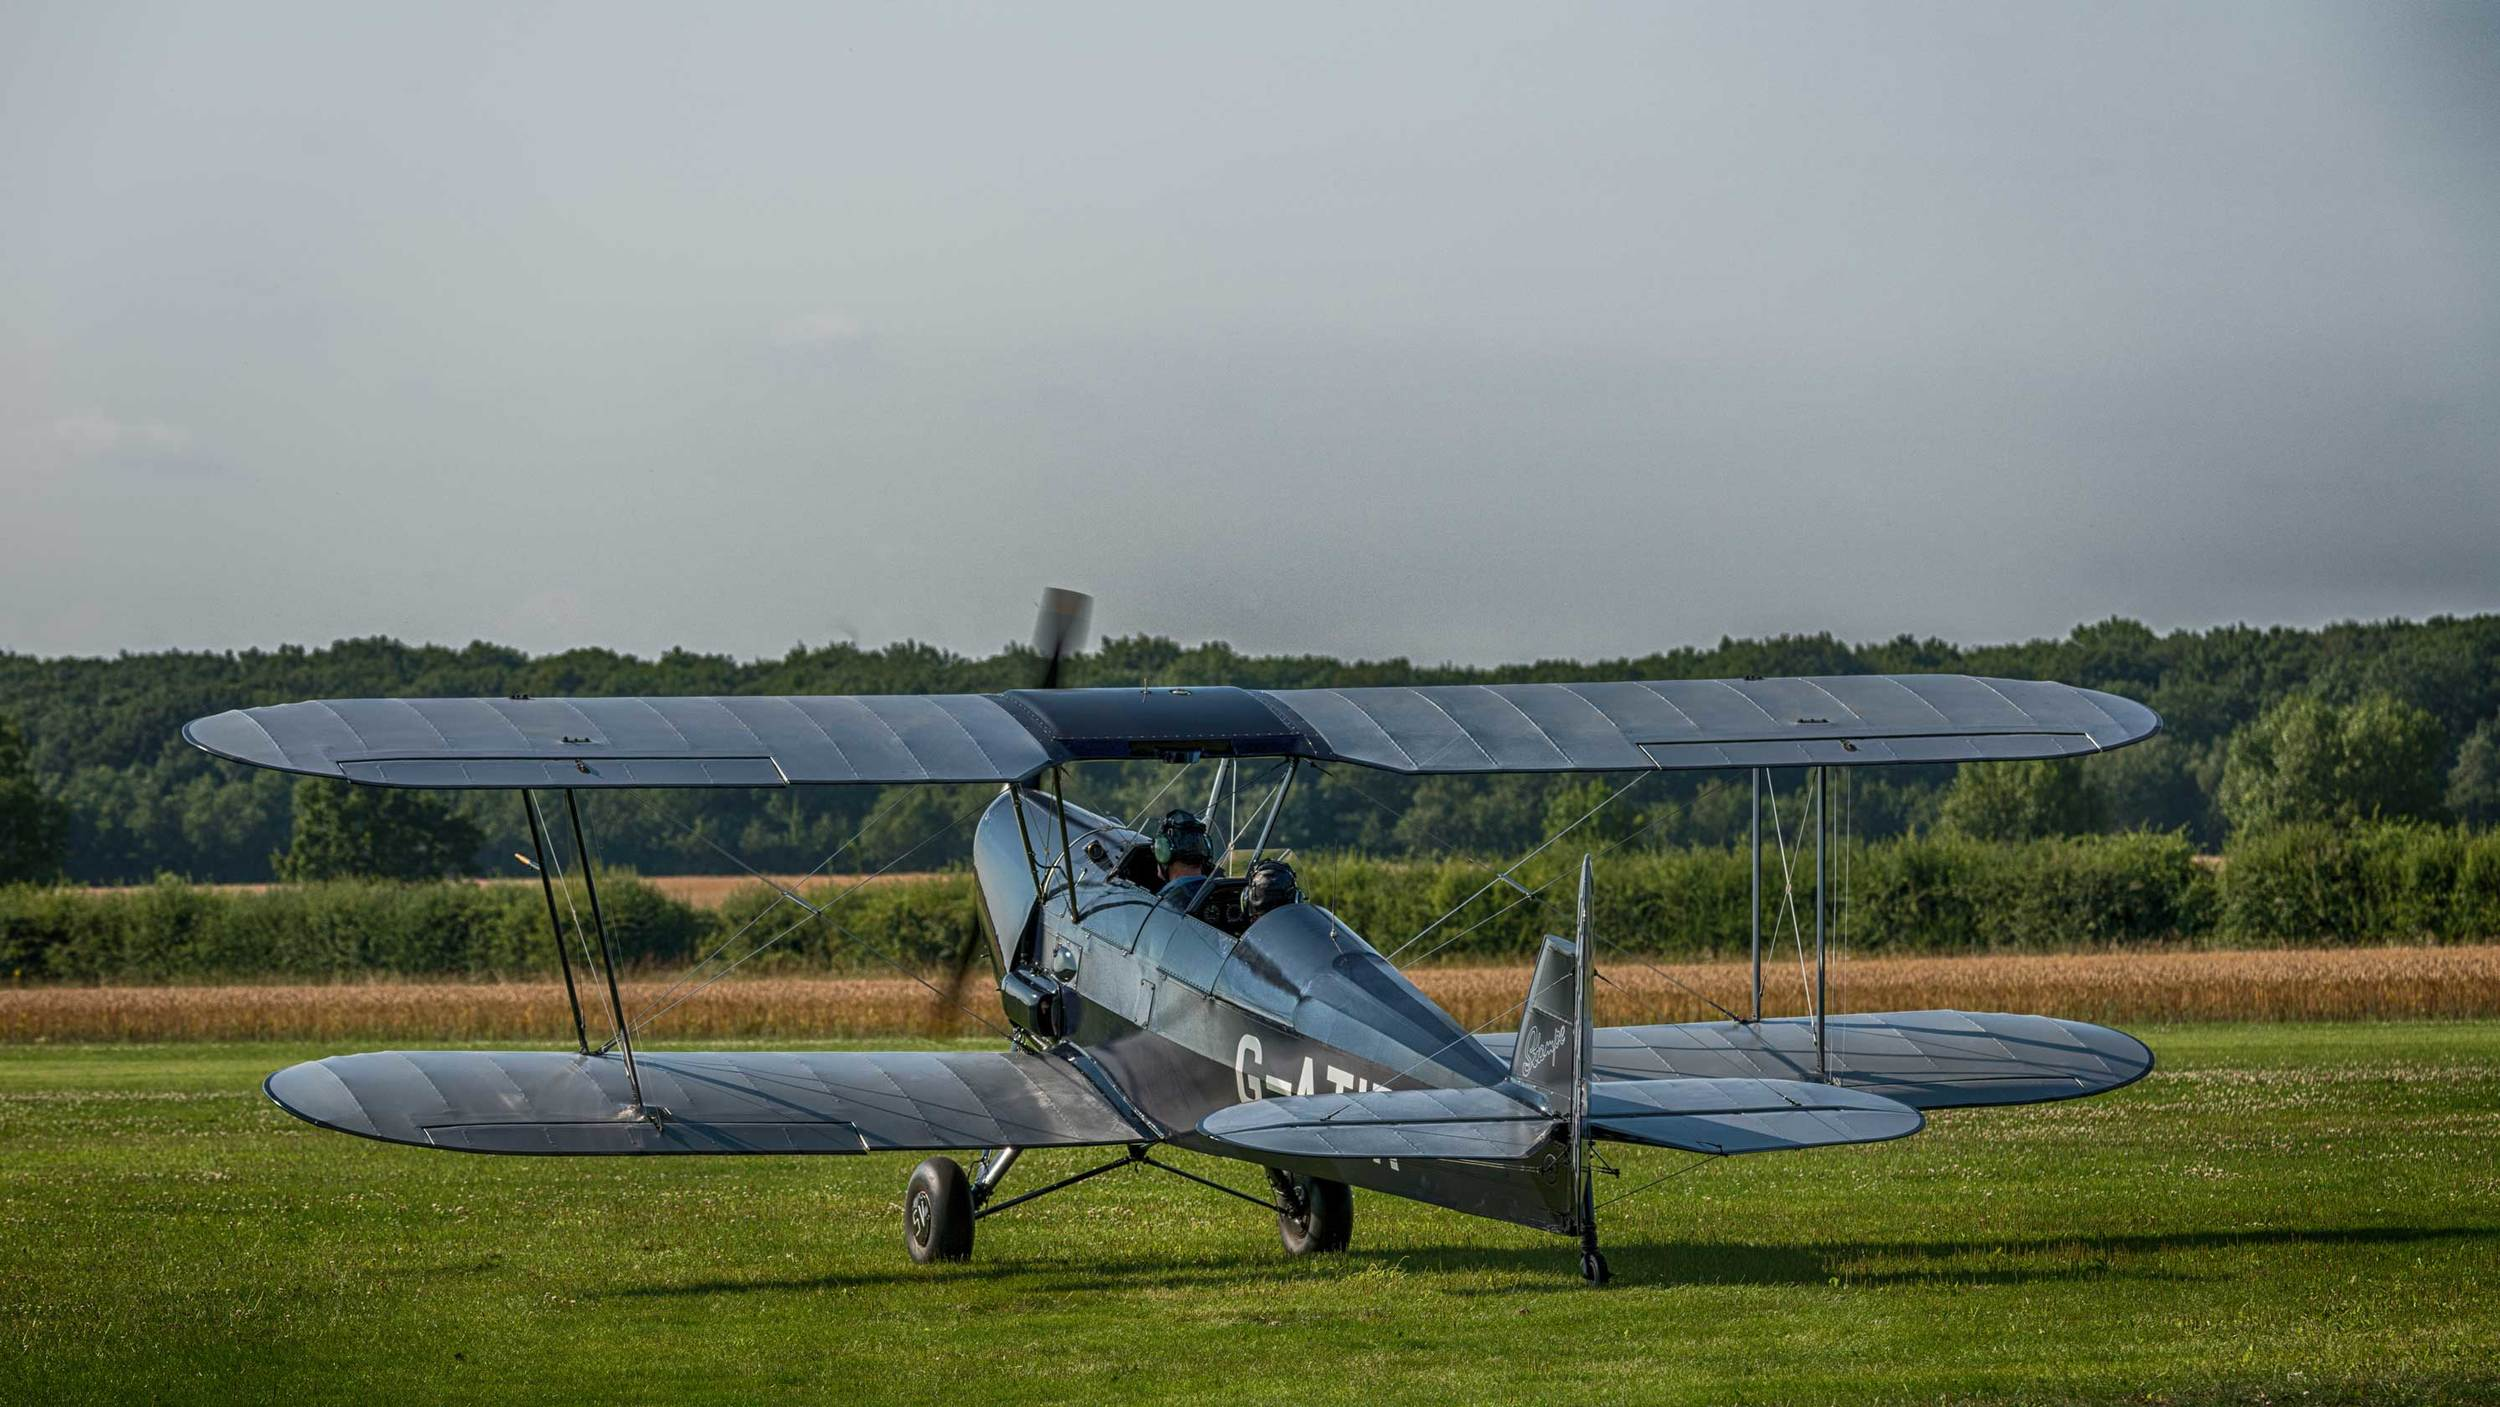 The Stampe taxiing towards the grass airstrip at the Little Gransden airfield. It flew for about a hour today, offering its passengers some breathtaking views of the British countryside.